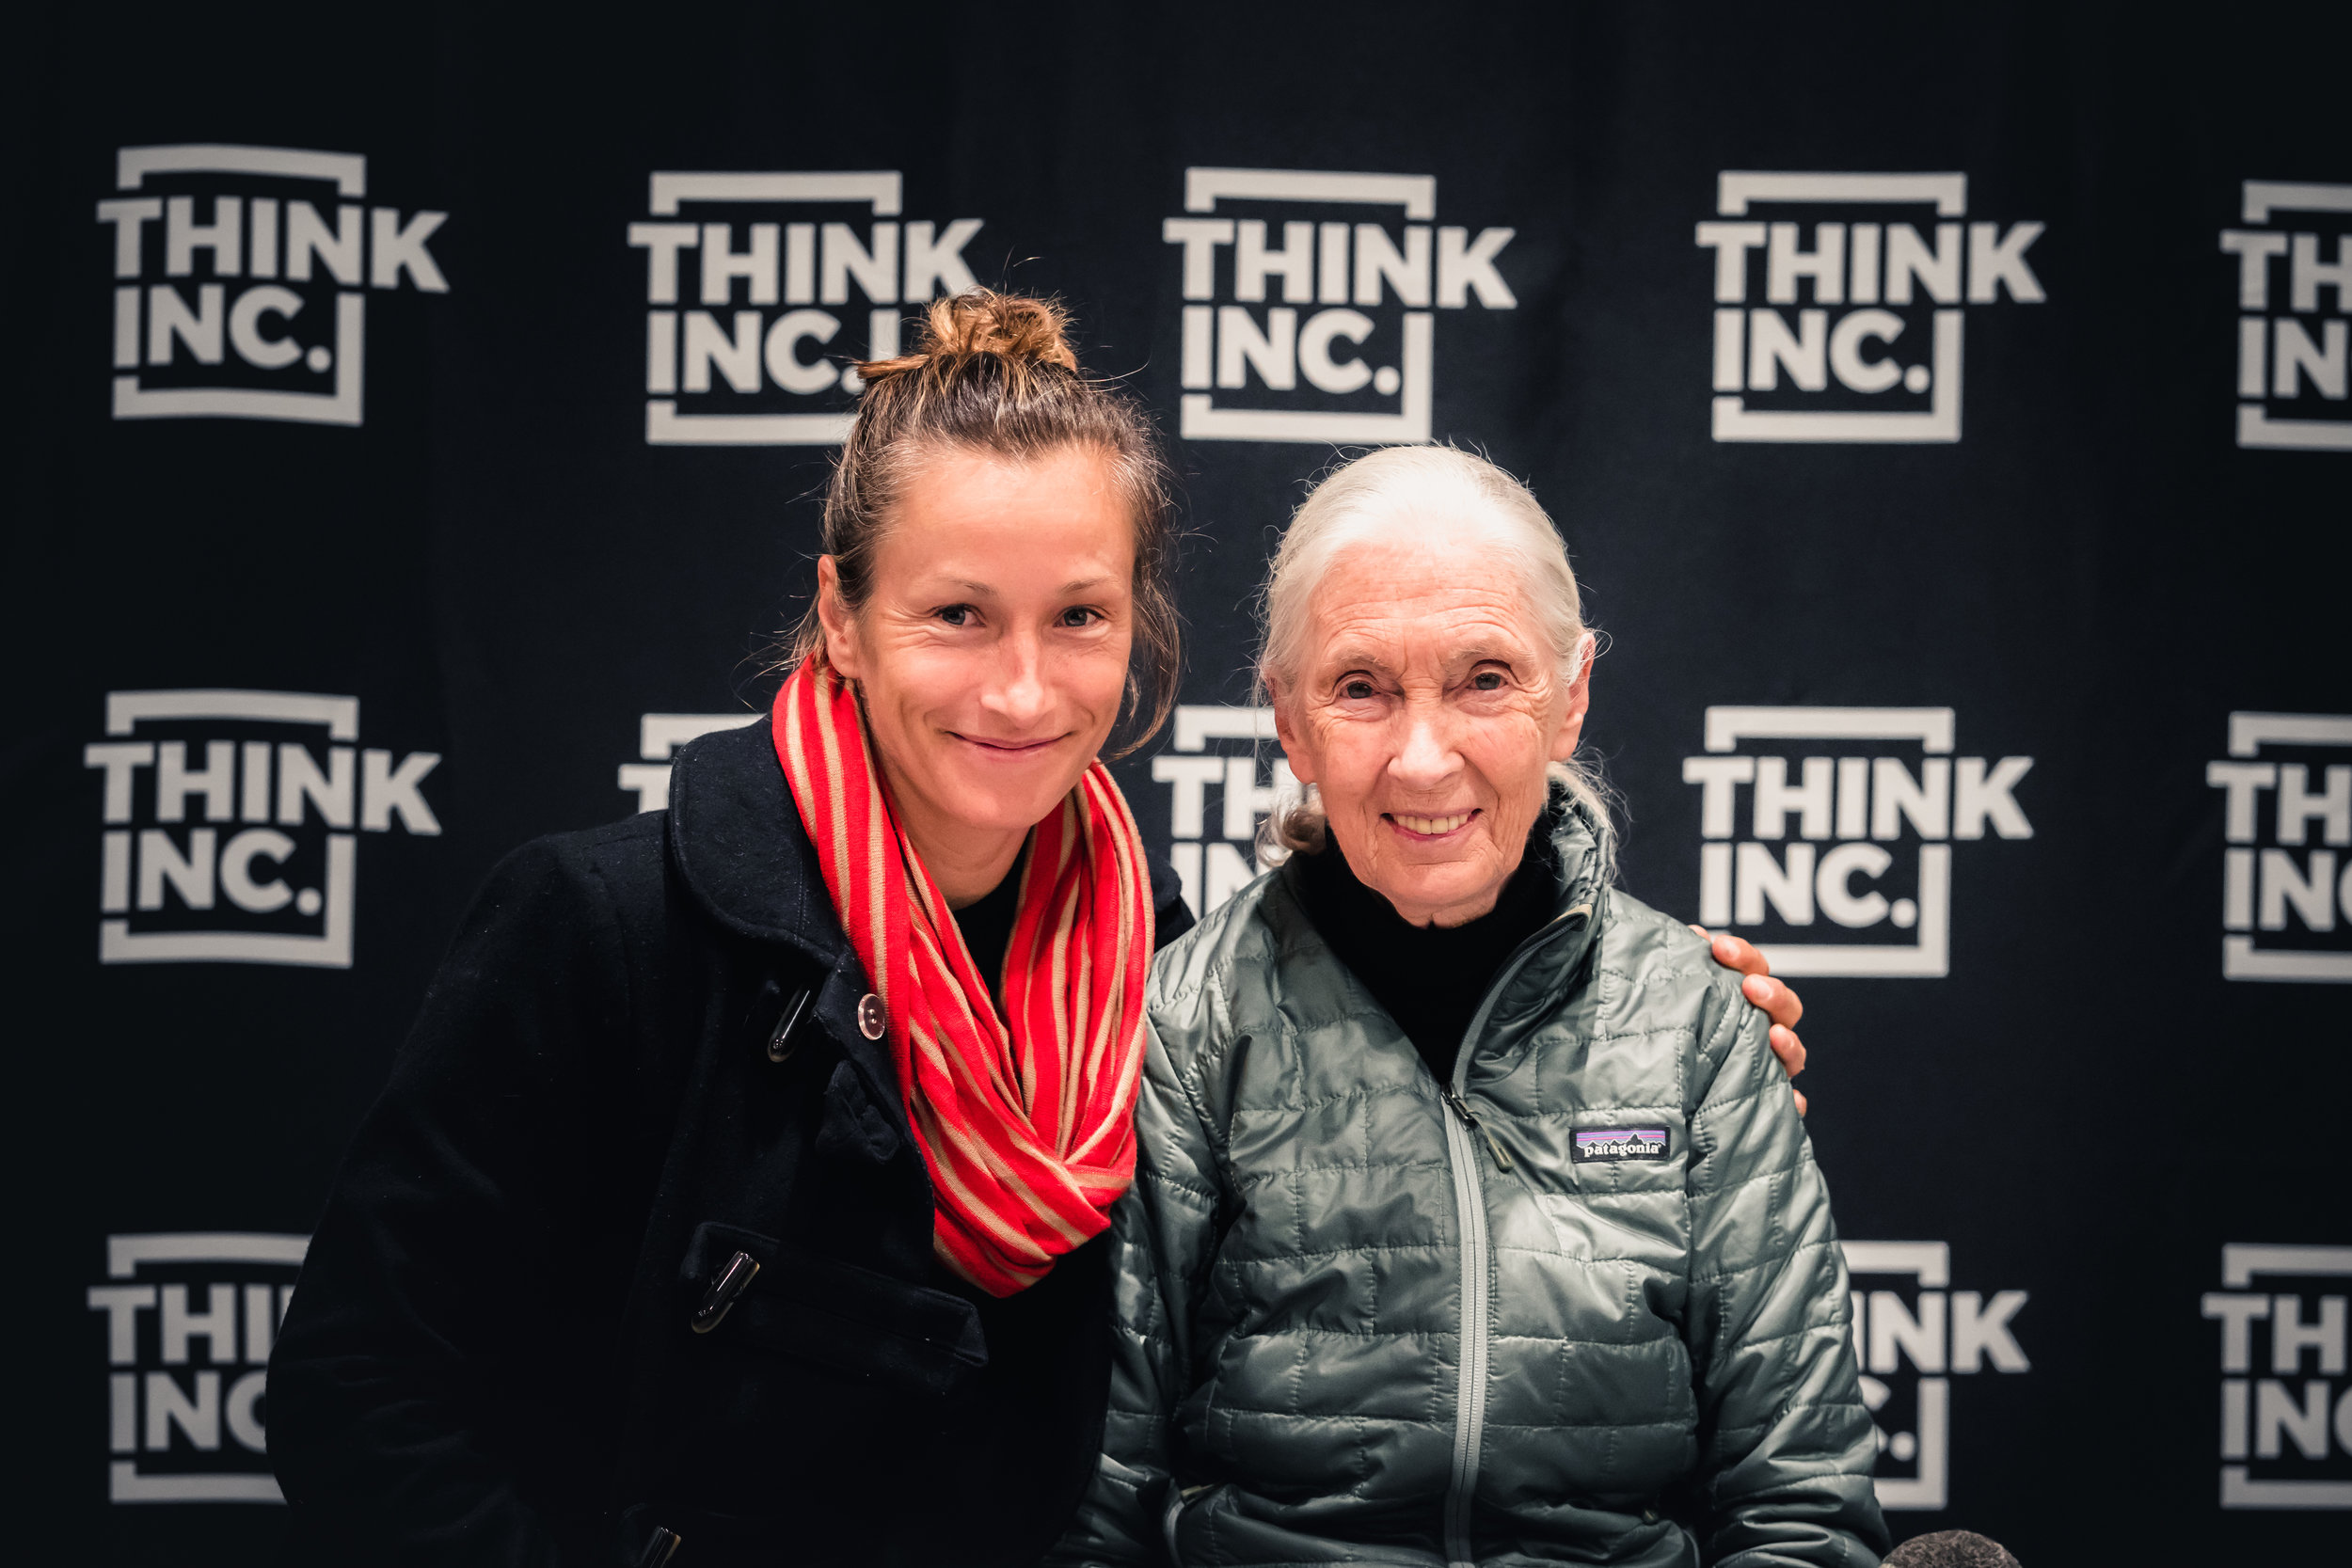 We felt privileged to hear Dr Jane Goodall speak in Sydney on 8th May 2019. What a beautiful soul! We were humbled by her tireless devotion to conservation and inspired by her hope for the future. We are committed, more than ever before, to supporting and empowering the next generation ~ for the future of their planet ~